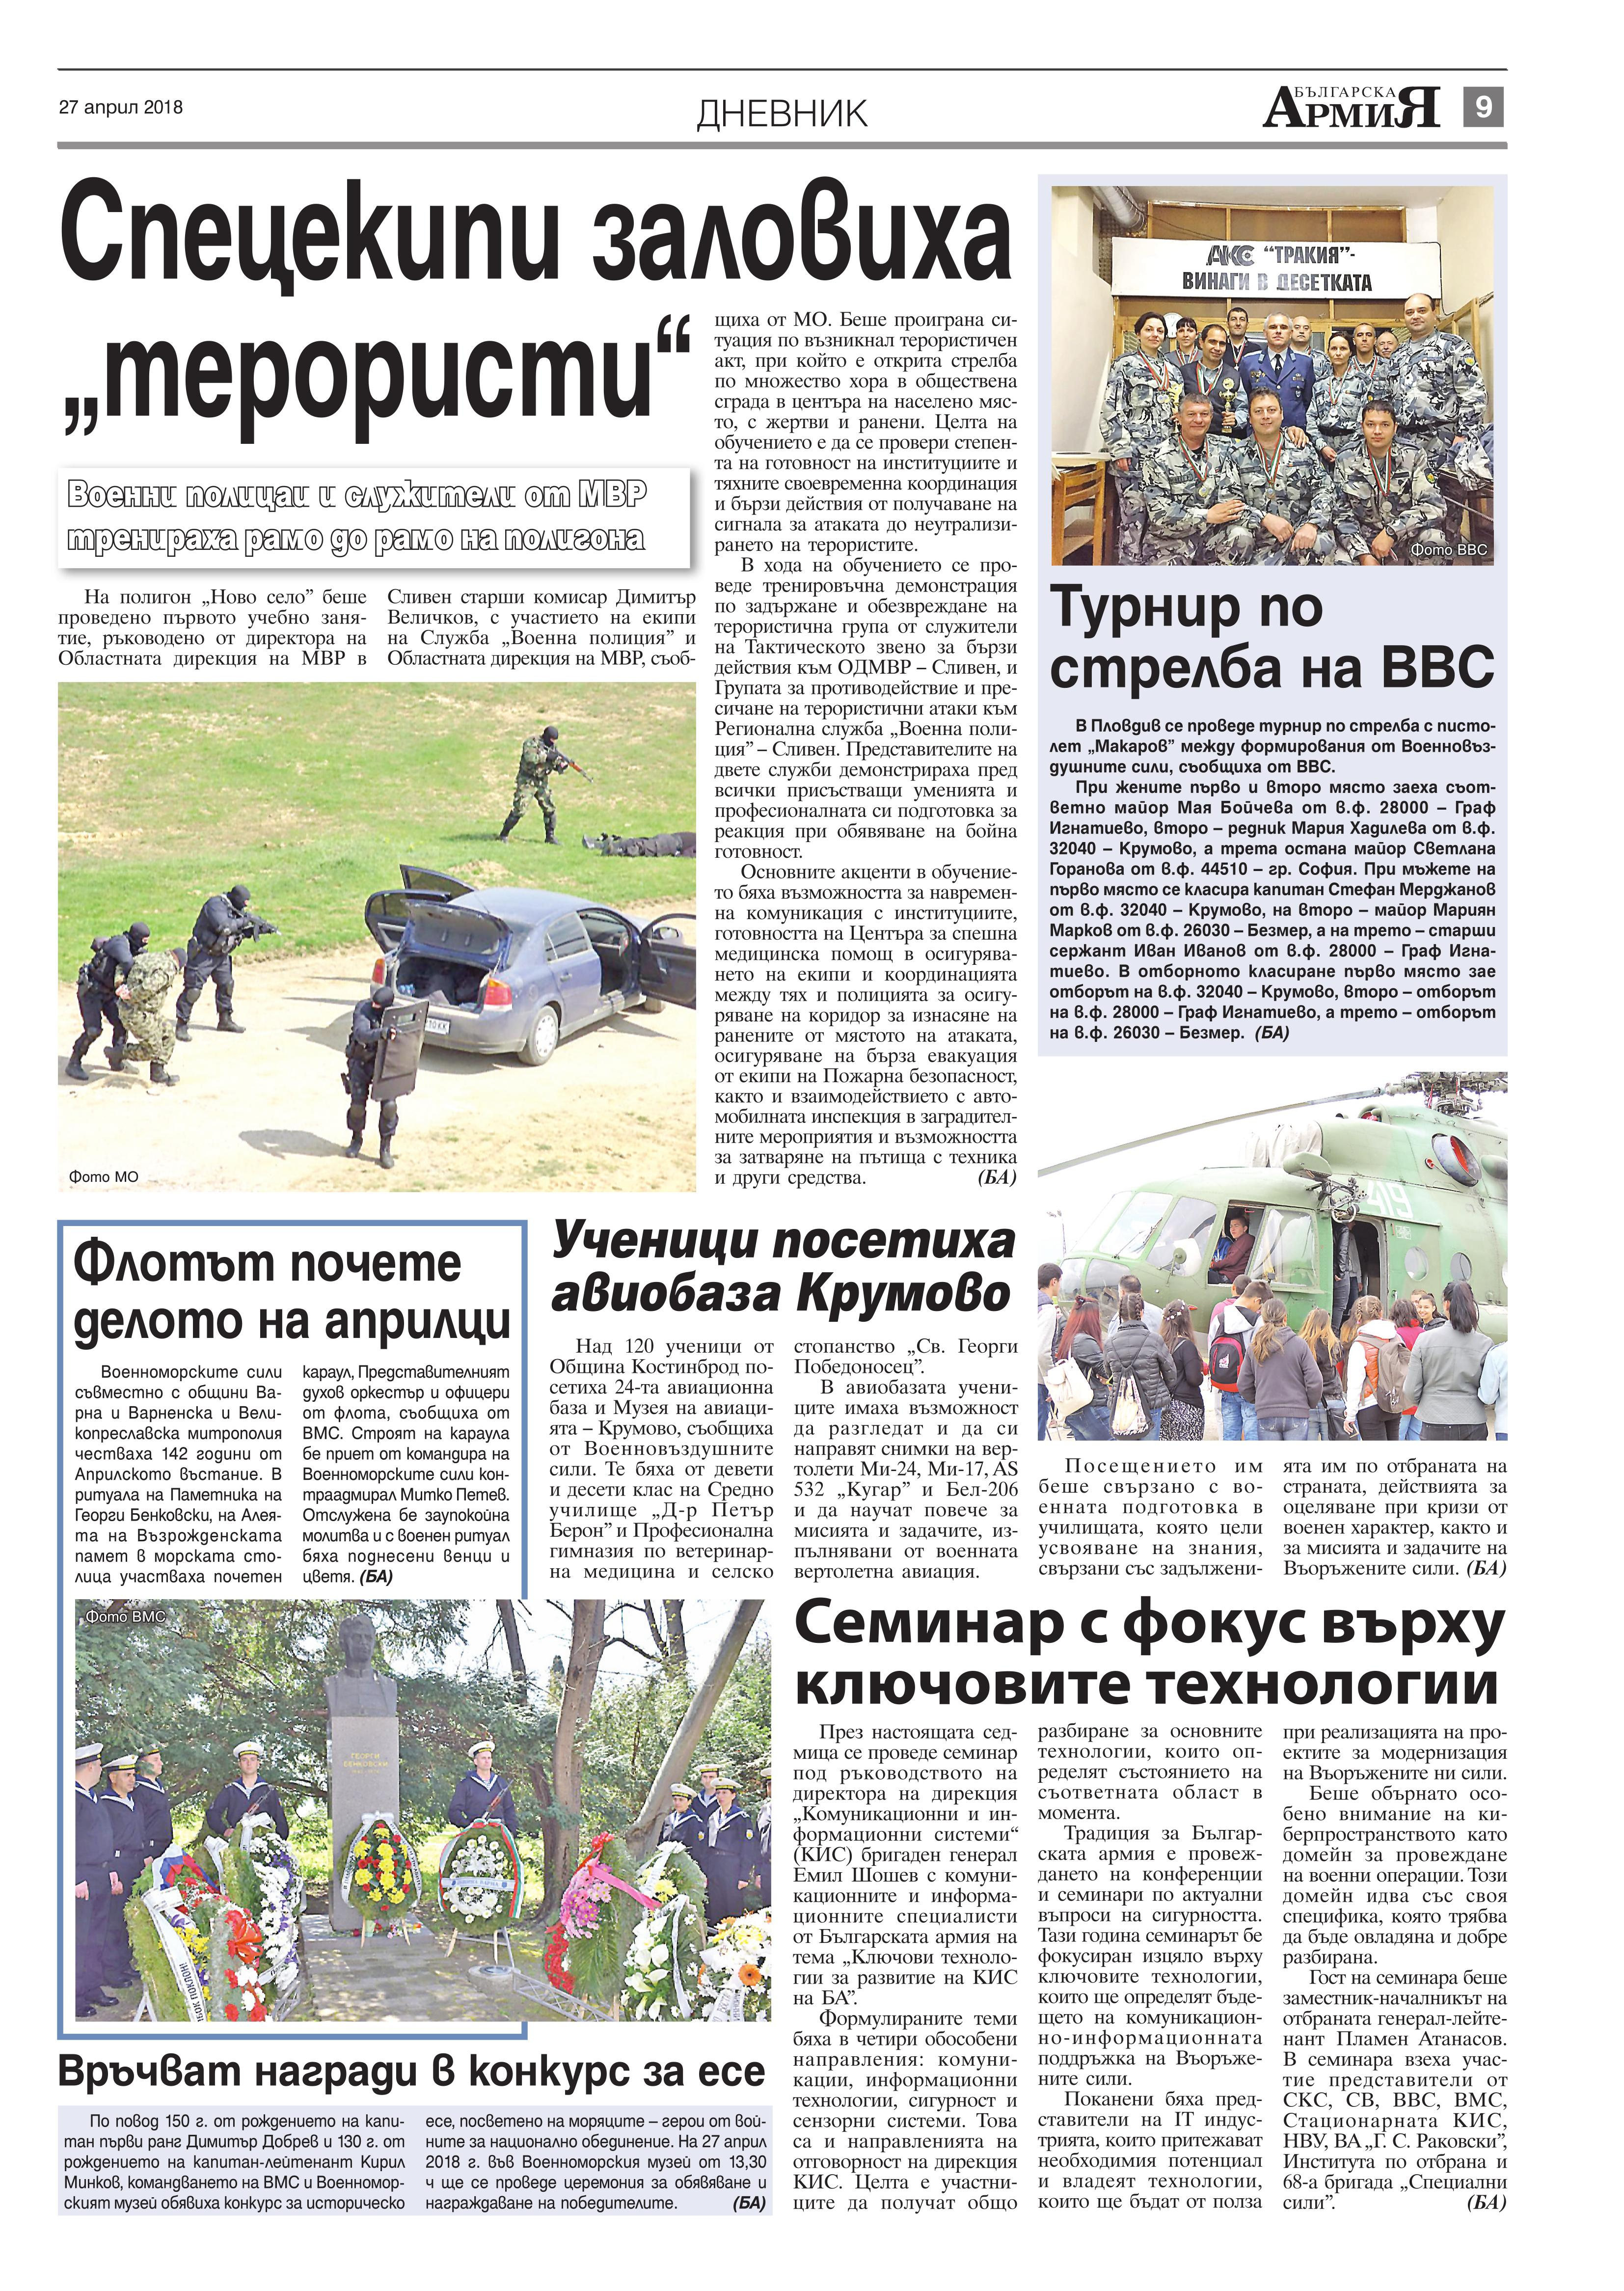 http://armymedia.bg/wp-content/uploads/2015/06/09.page1_-47.jpg